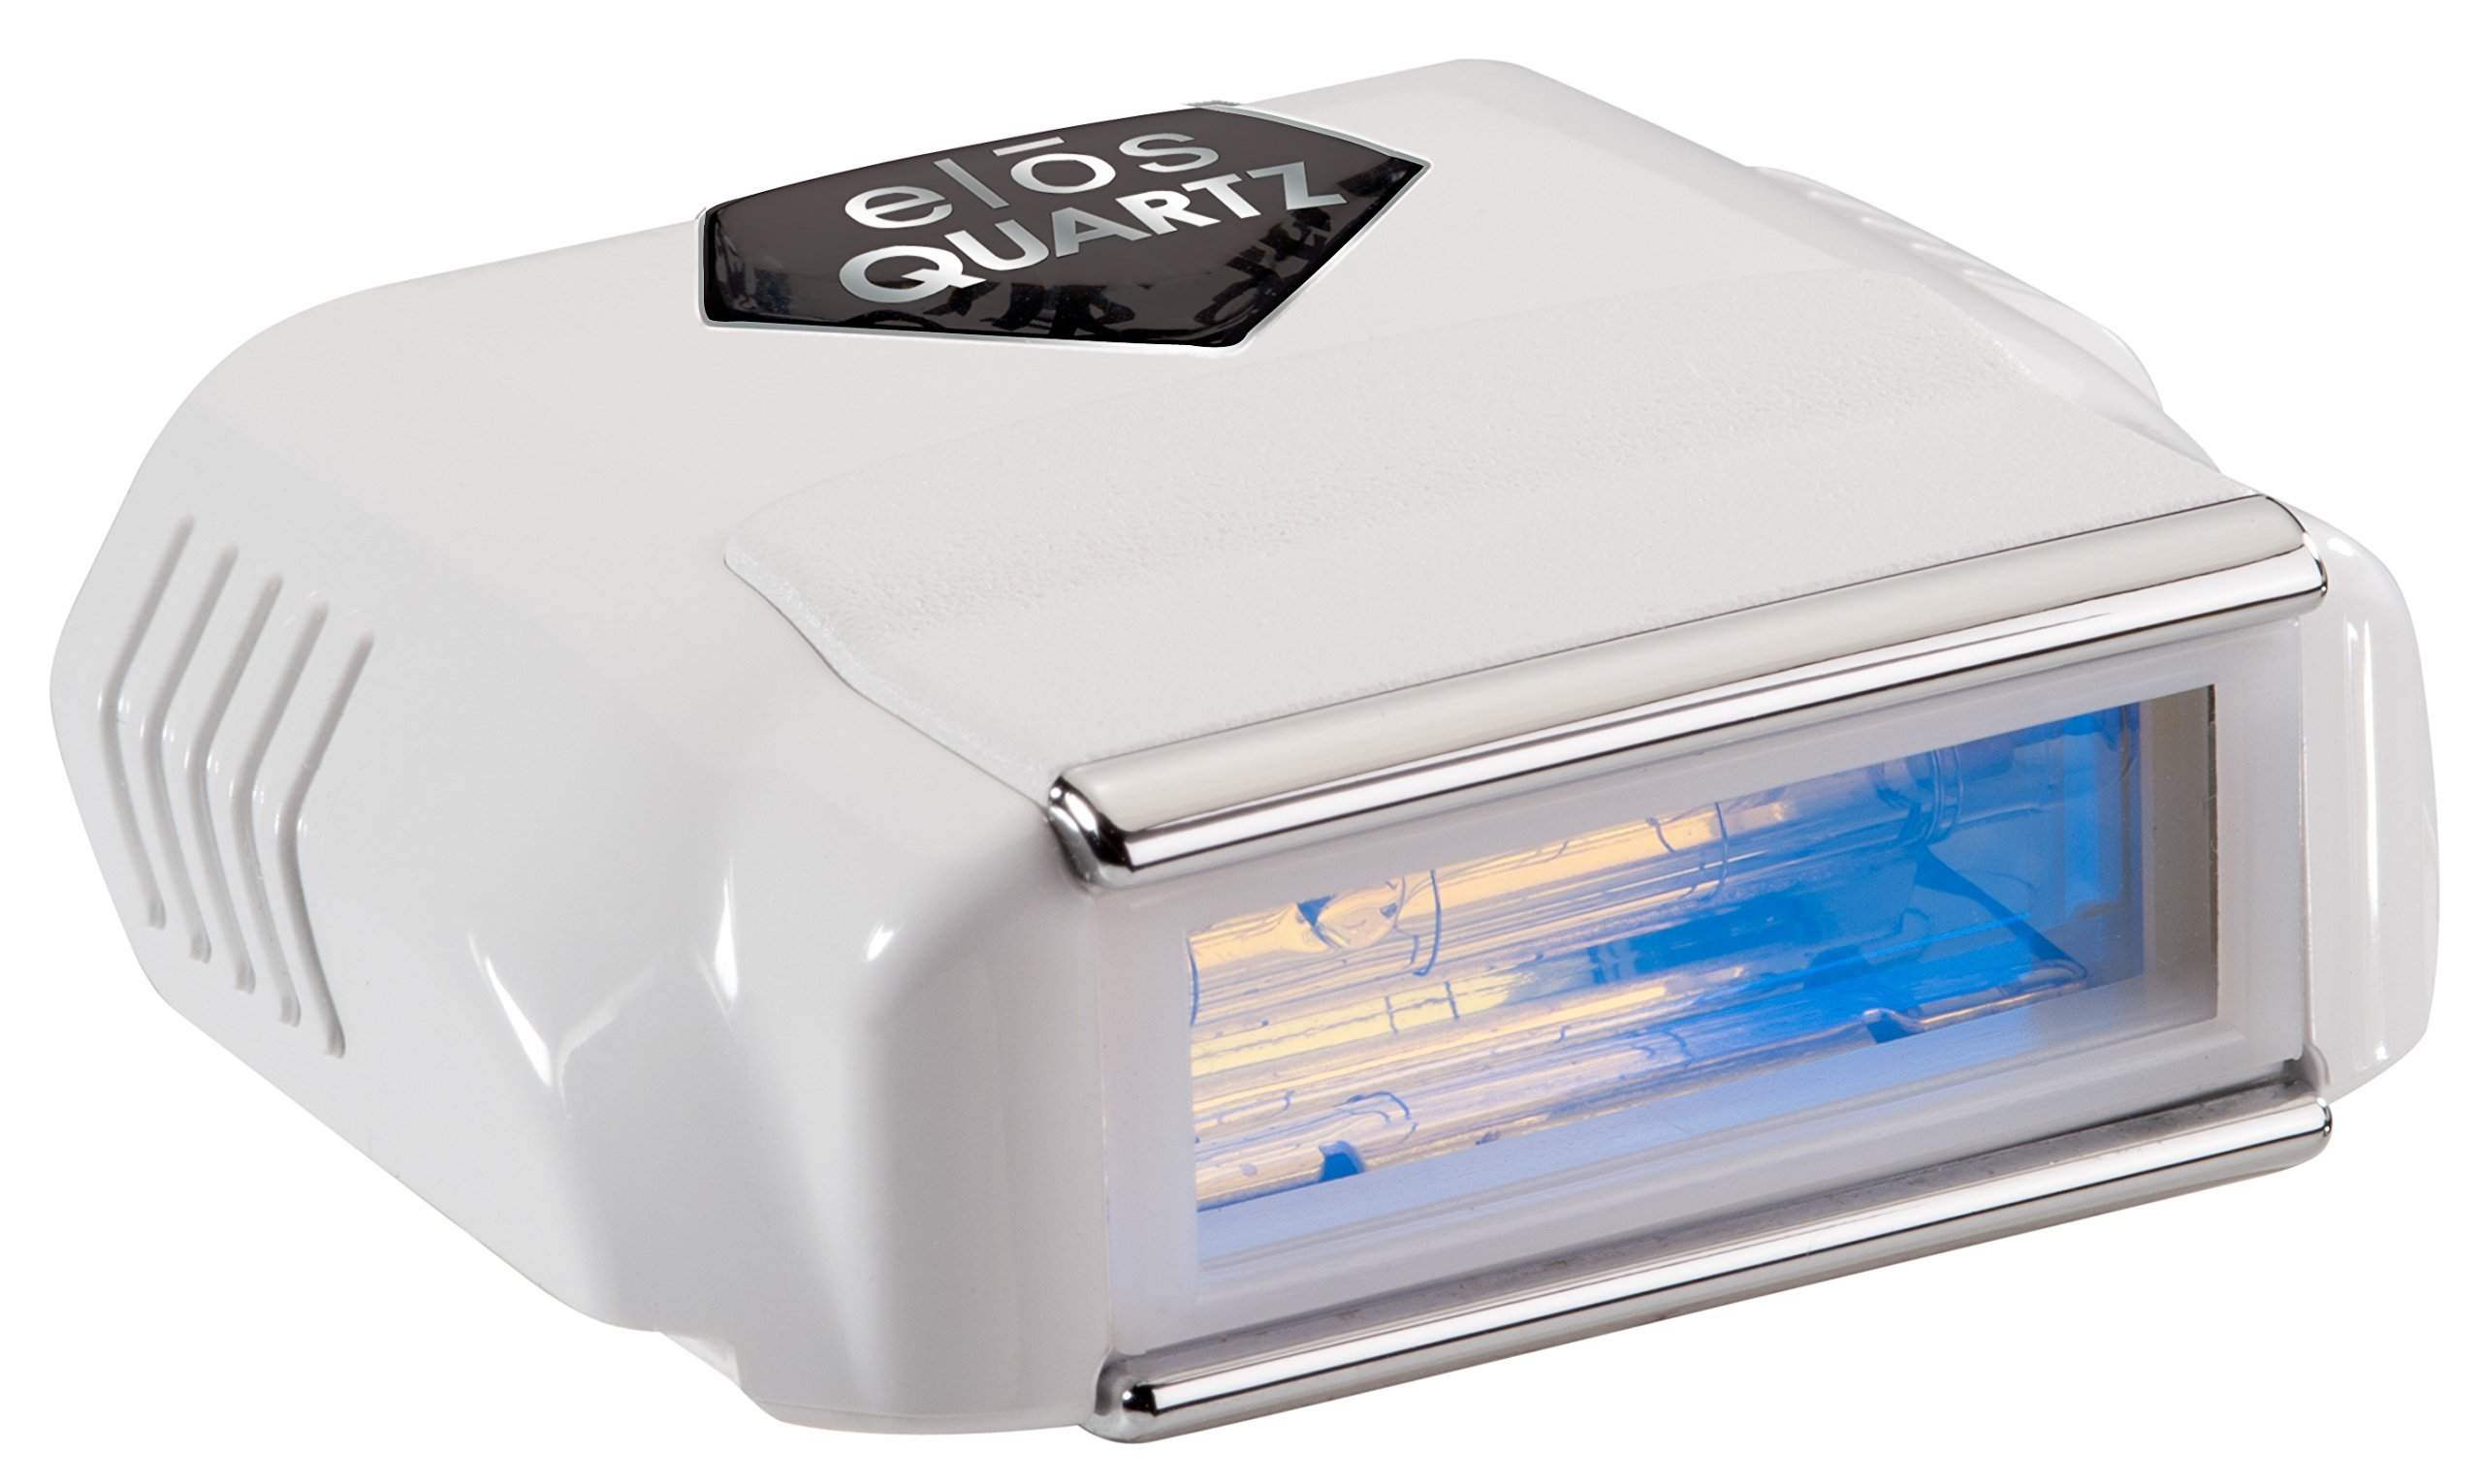 Me My Elos Soft Quartz Lamp Cartridge 120,000 Light Pulses (Fits Me Smooth / Me Soft / Me Touch / Me Plus / Me PRO Ultra)